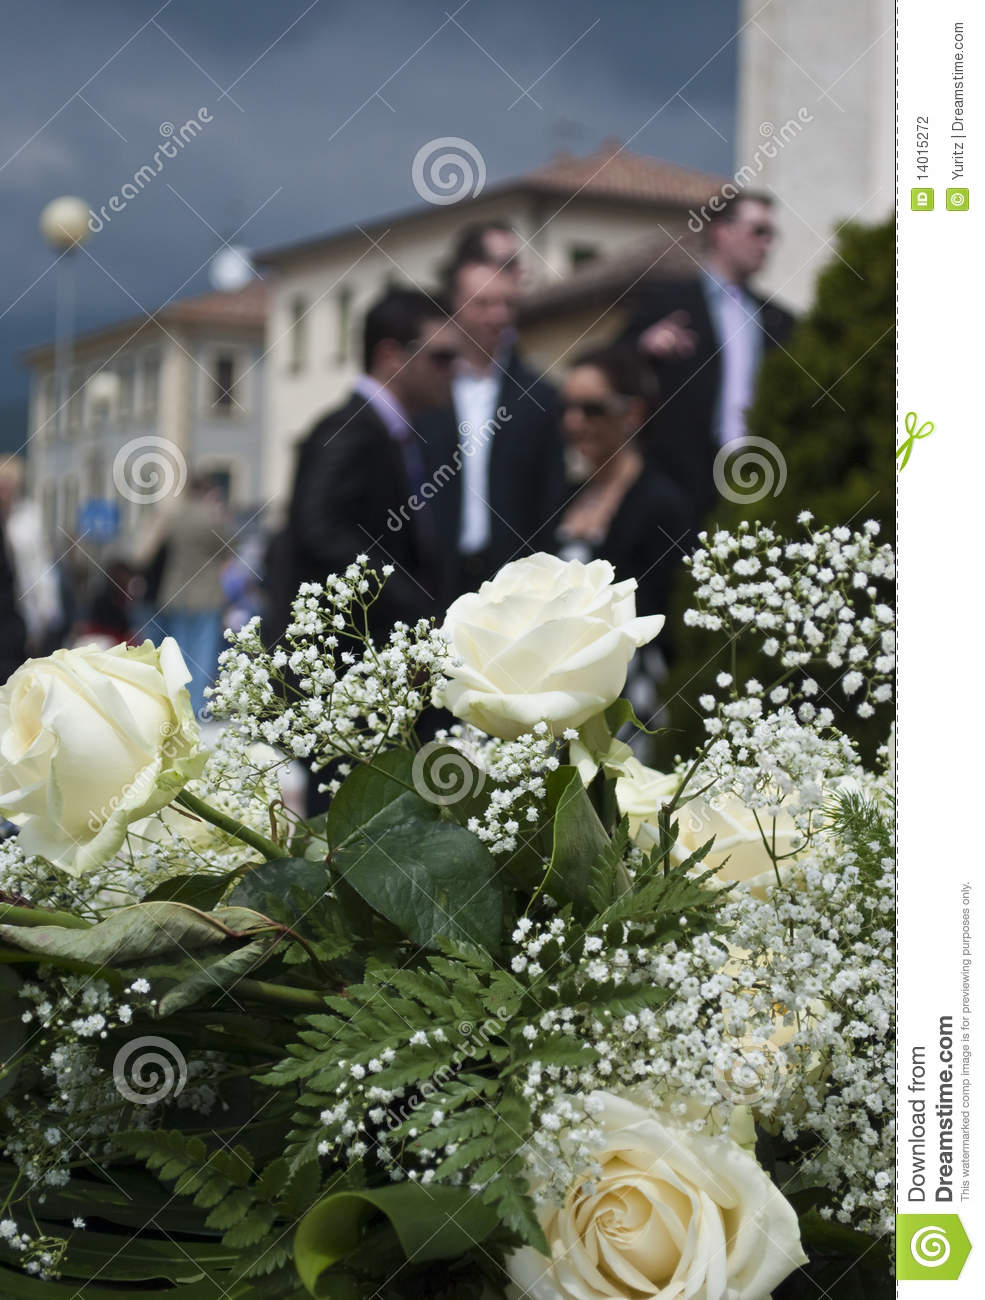 Bouquet and wedding guests